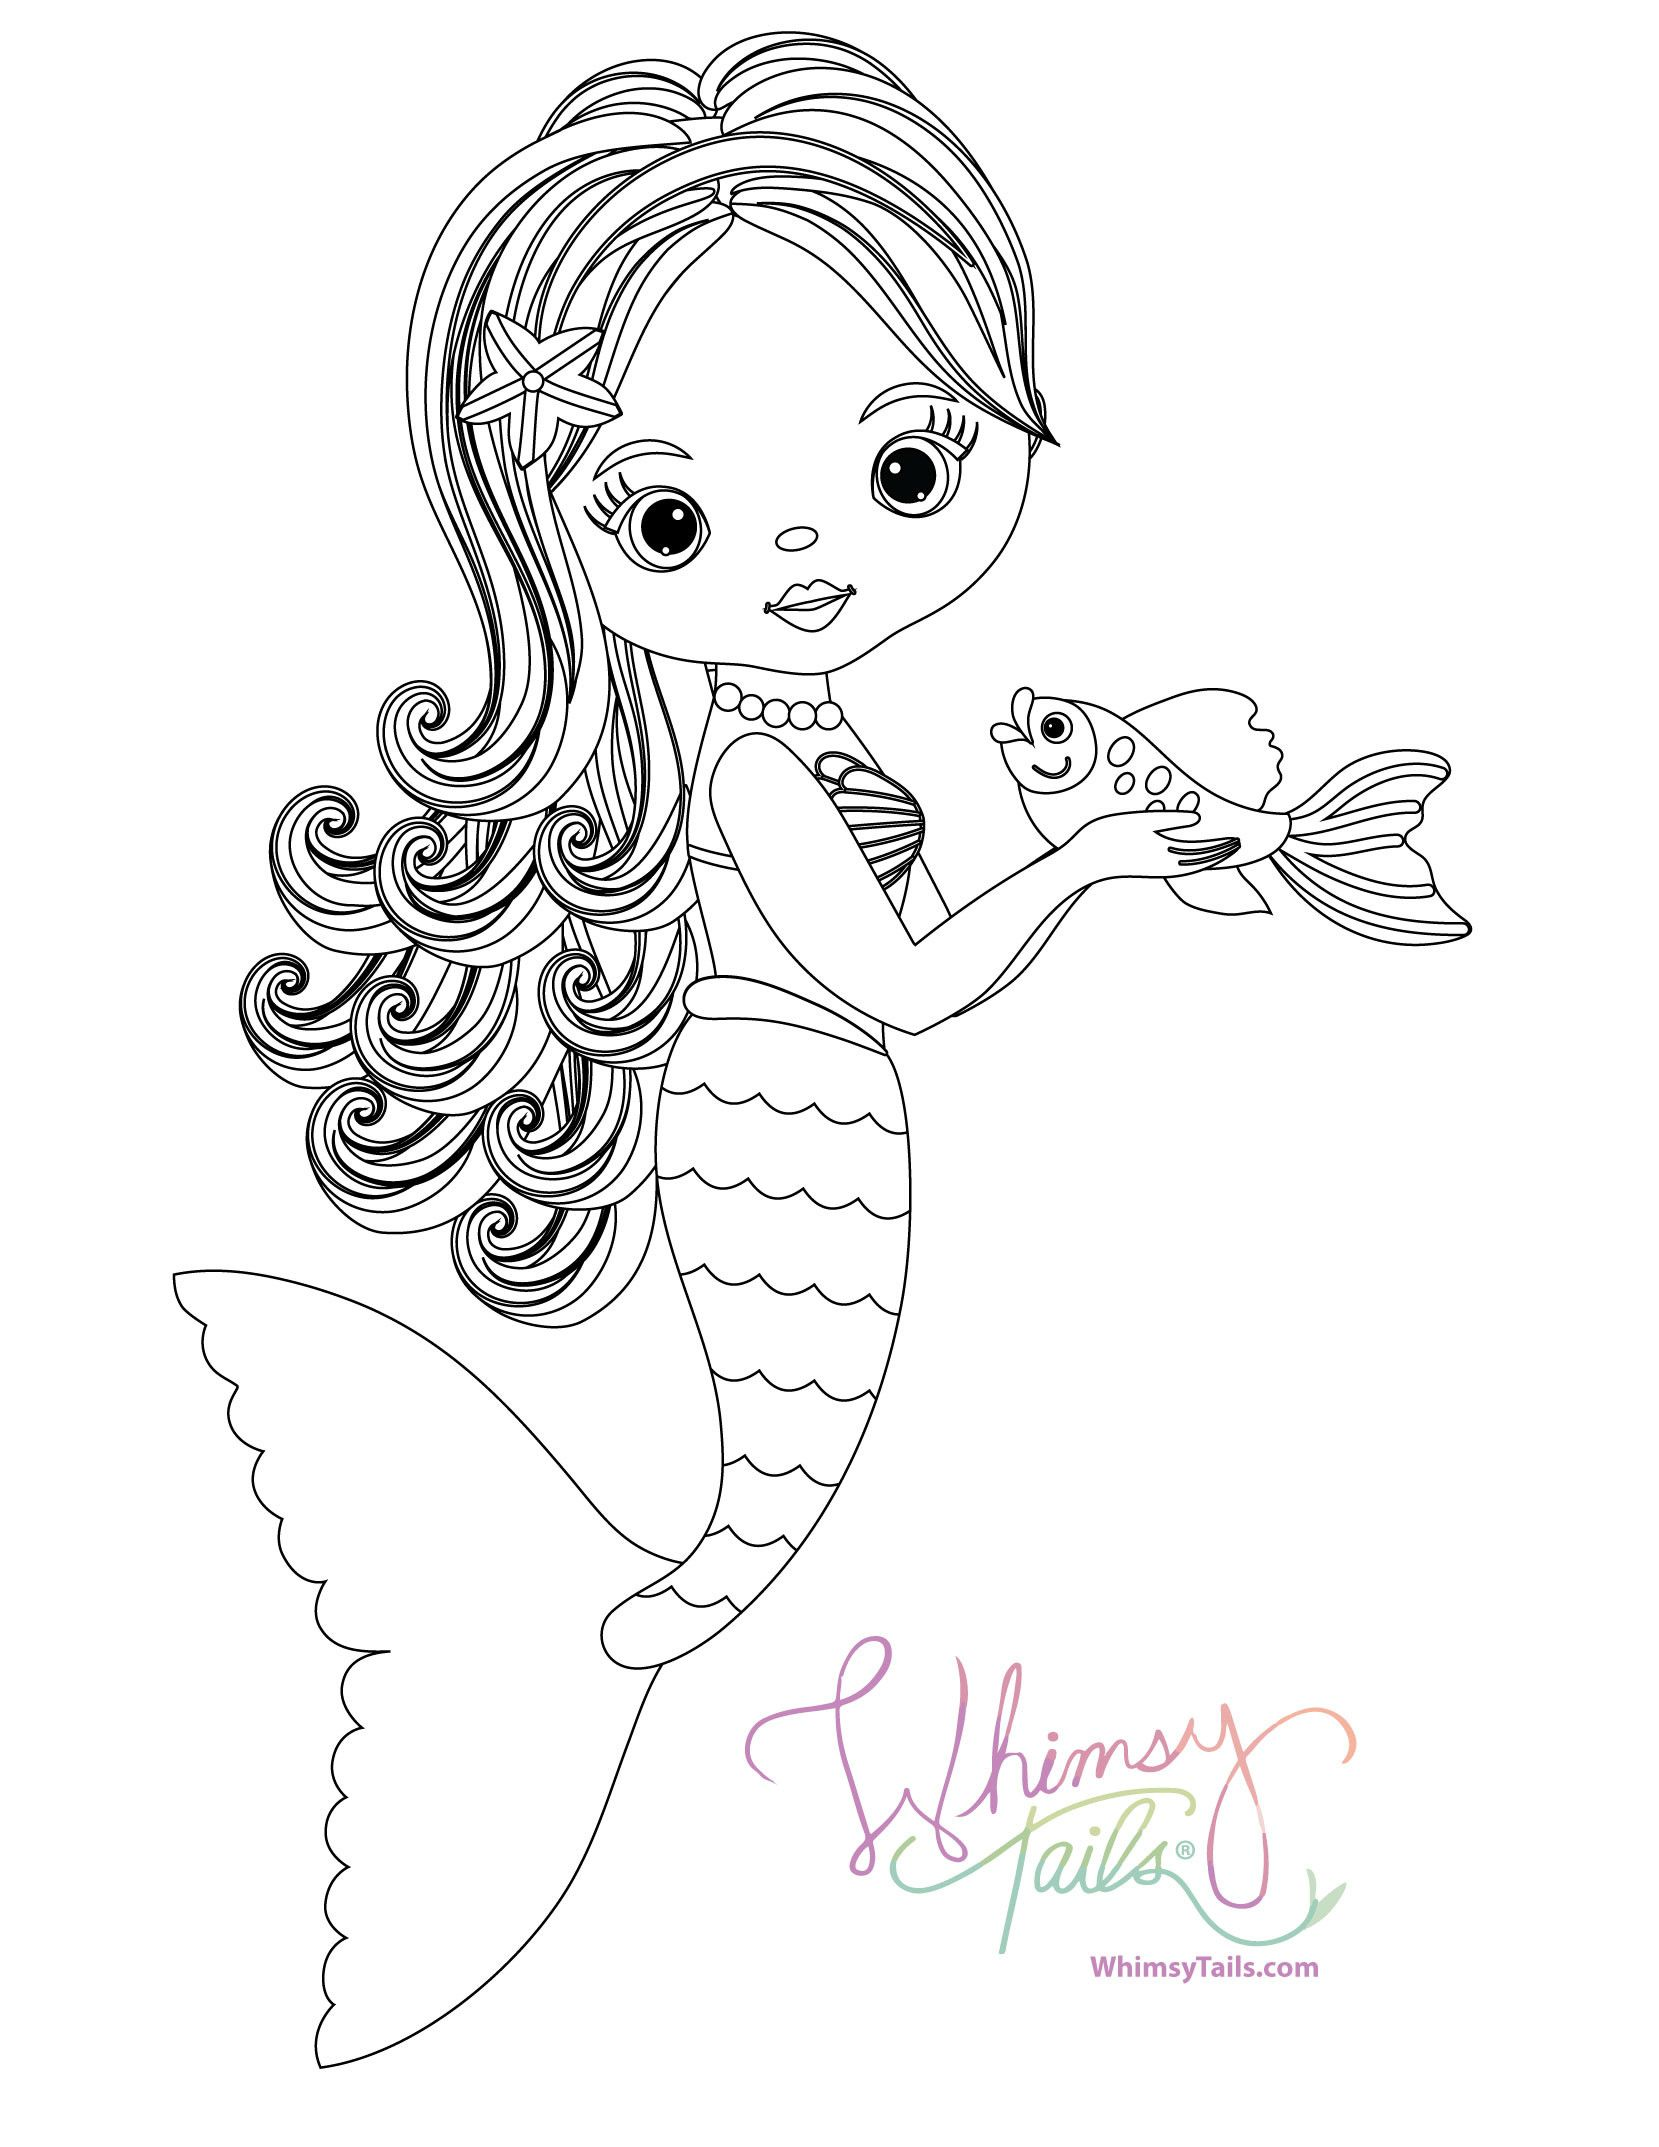 Mermaid Tail Coloring Page Youngandtae Com Mermaid Coloring Pages Unicorn Coloring Pages Free Coloring Pictures